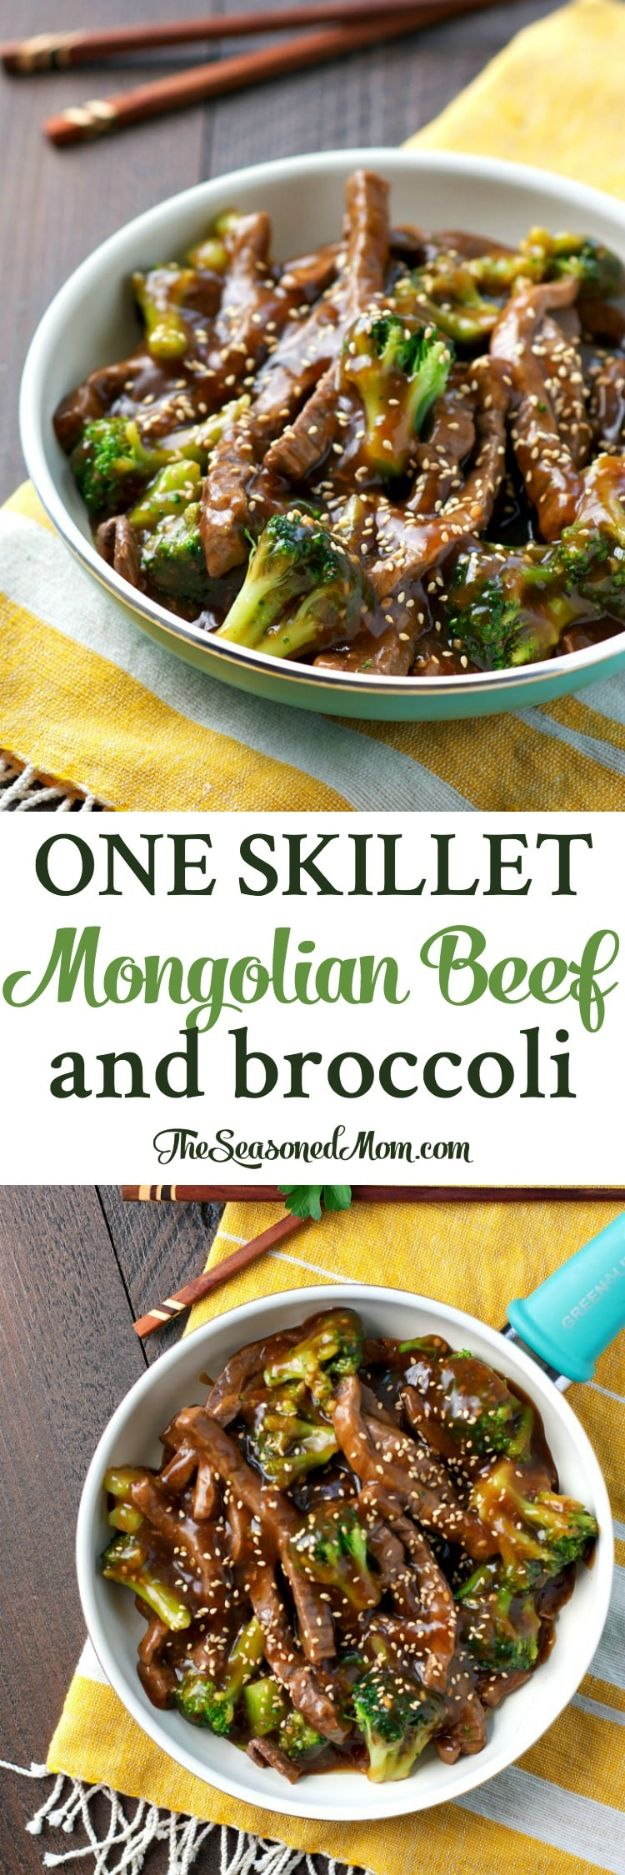 Easy Dinner Recipes - One Skillet Mongolian Beef Broccoli - Quick and Simple Dinner Recipe Ideas for Weeknight and Last Minute Supper - Chicken, Ground Beef, Fish, Pasta, Healthy Salads, Low Fat and Vegetarian Dishes - Easy Meals for the Family, for Two, for One and Cook Ahead Crockpoit Dinners - Cheap Casseroles and Budget Friendly Foods to Make at Home http://diyjoy.com/easy-dinner-recipes